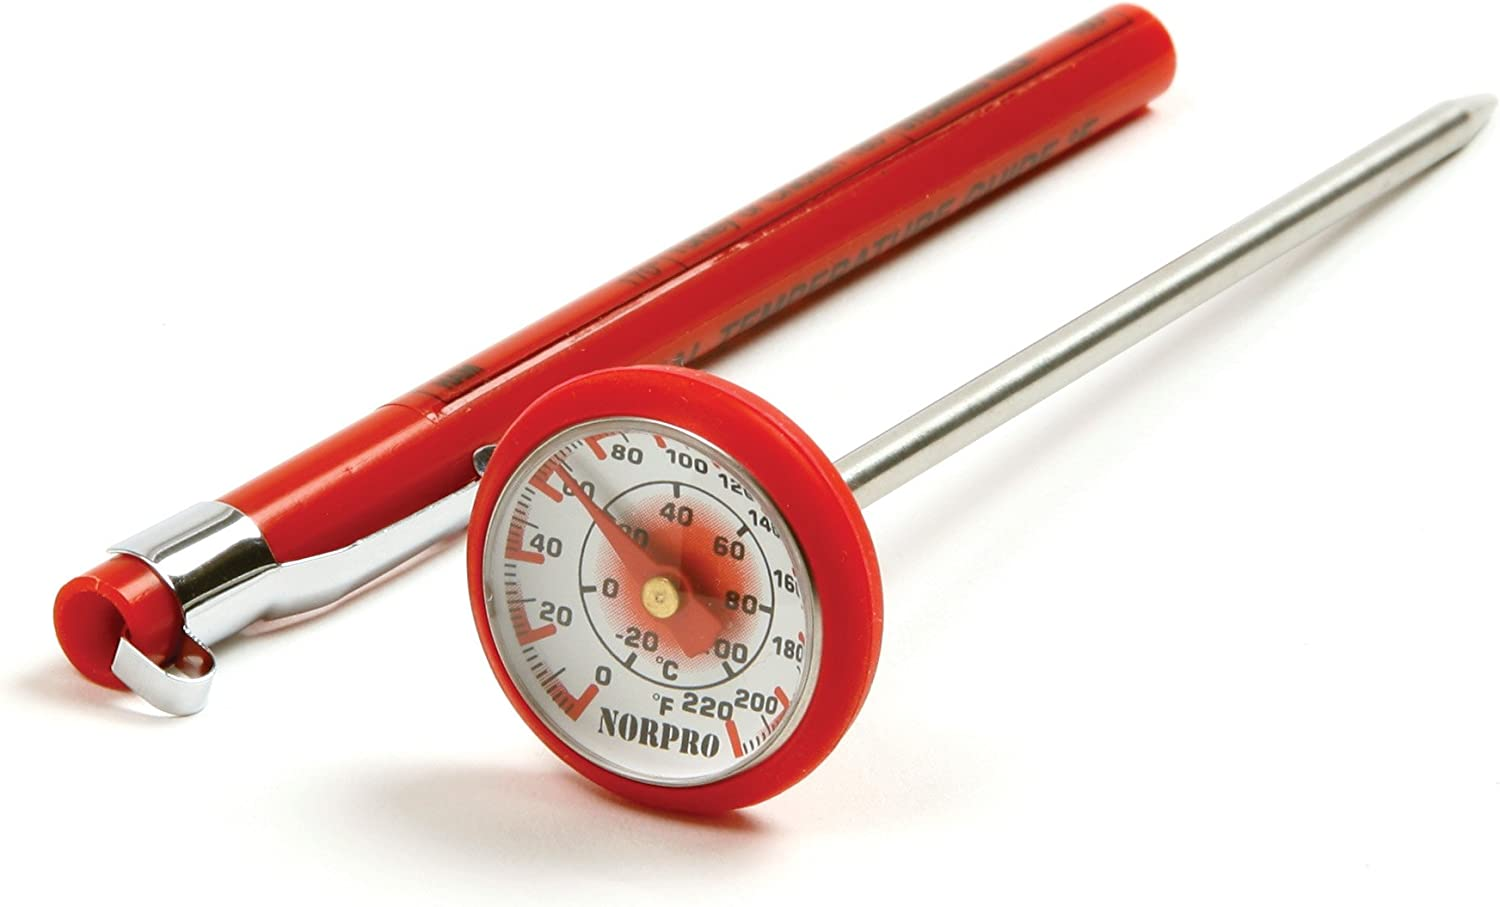 Norpro 5970 Soft Grip Silicone Instant Read Thermometer